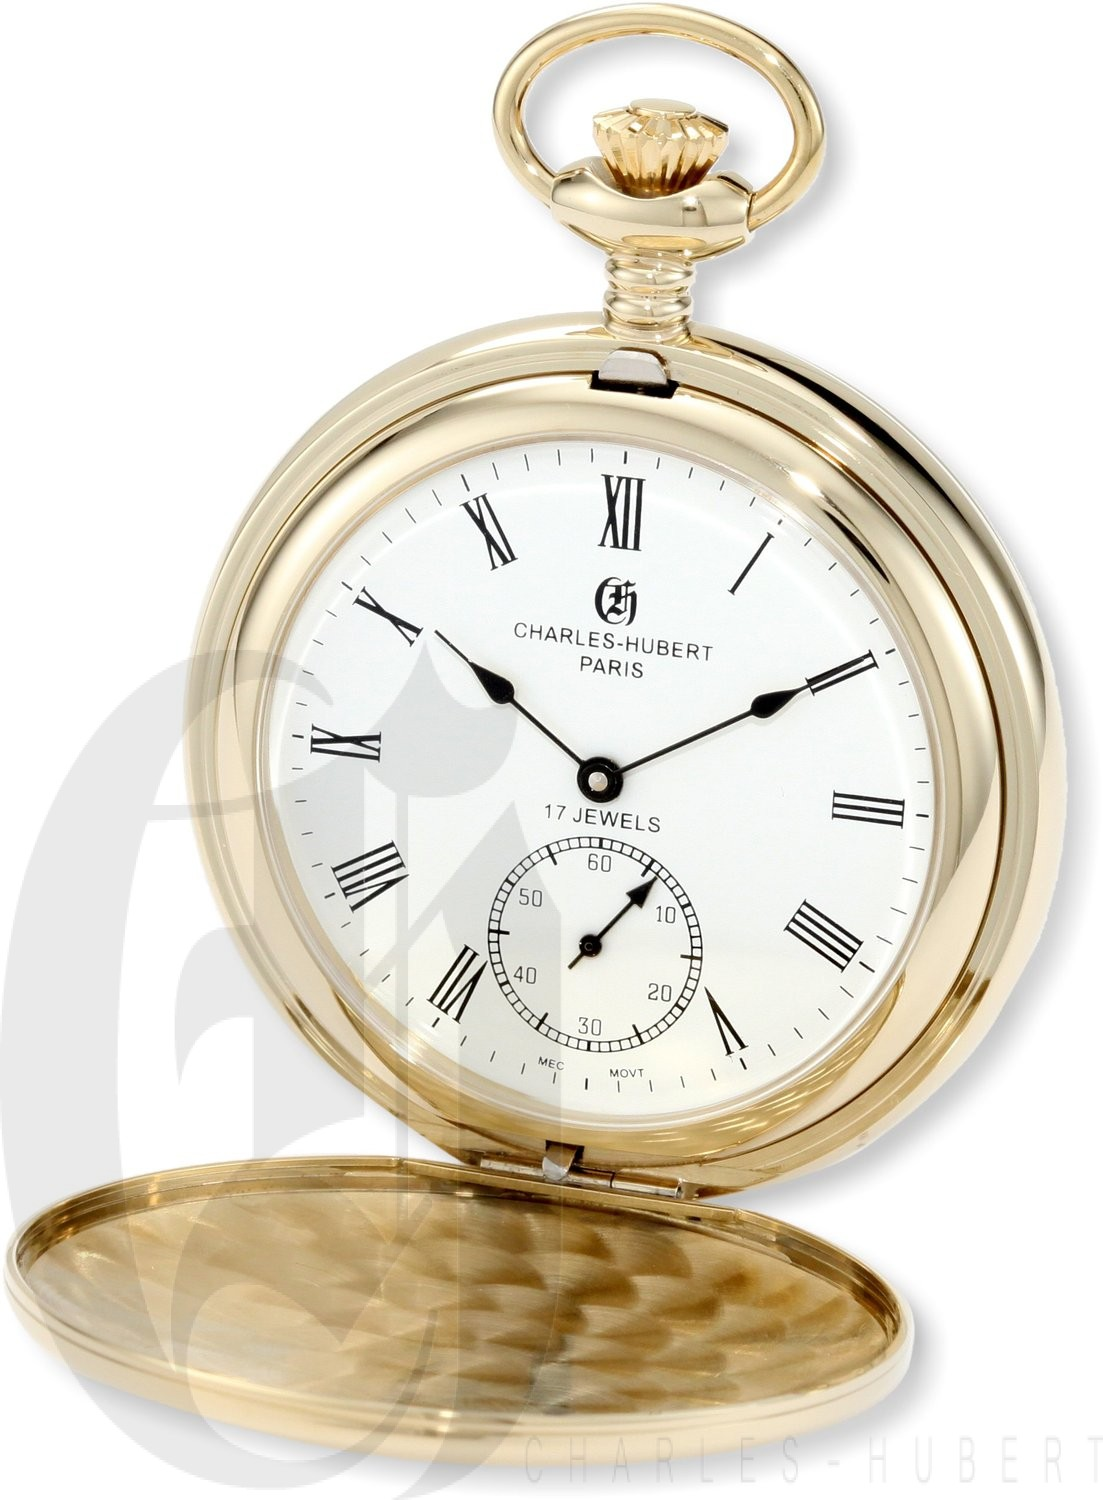 Charles-Hubert Paris Gold-Plated Stainless Steel Polished Finish Double Hunter Case Mechanical Pocket Watch